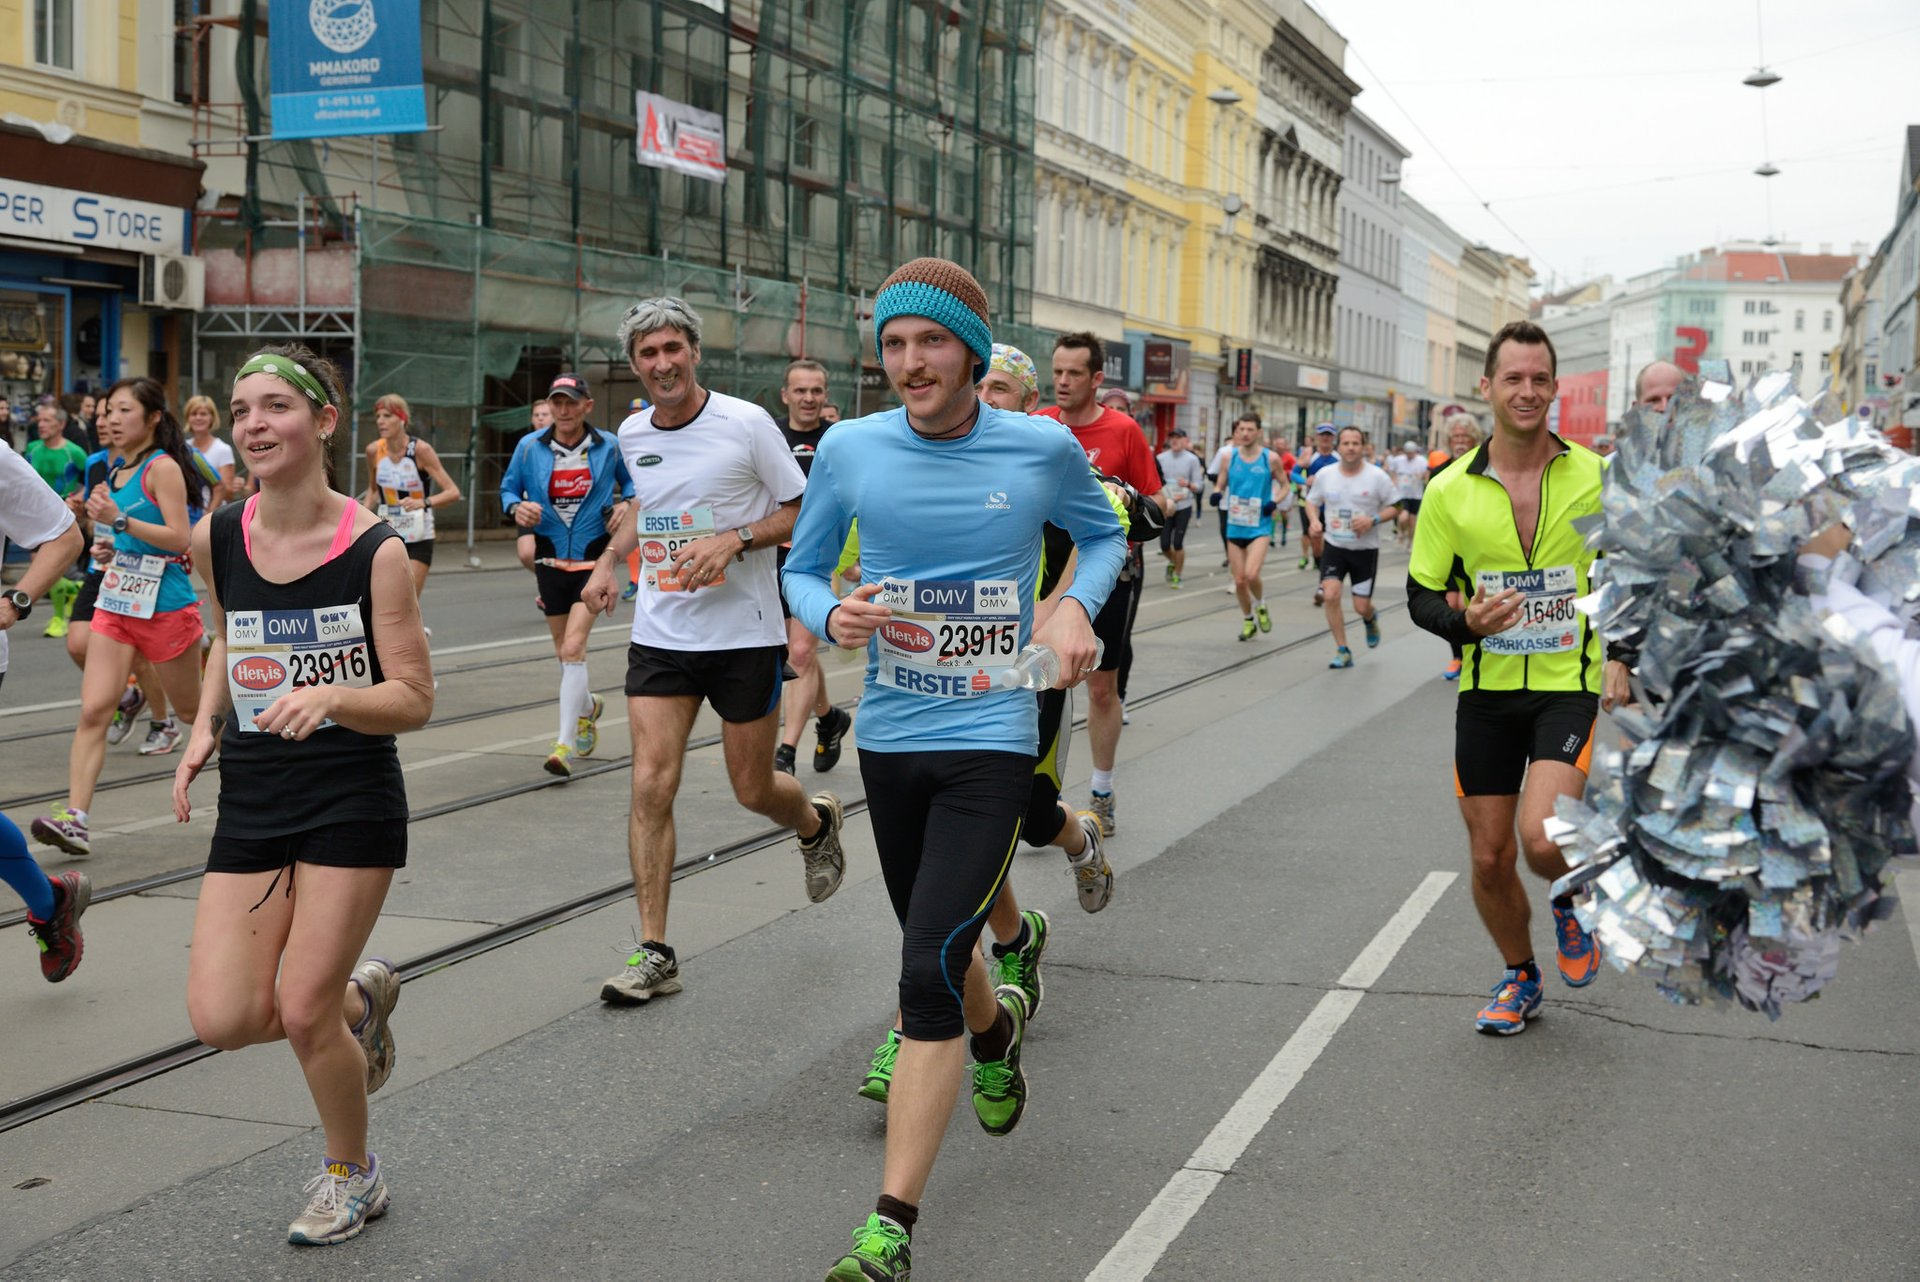 Vienna City Marathon in Vienna - Best Season 2019